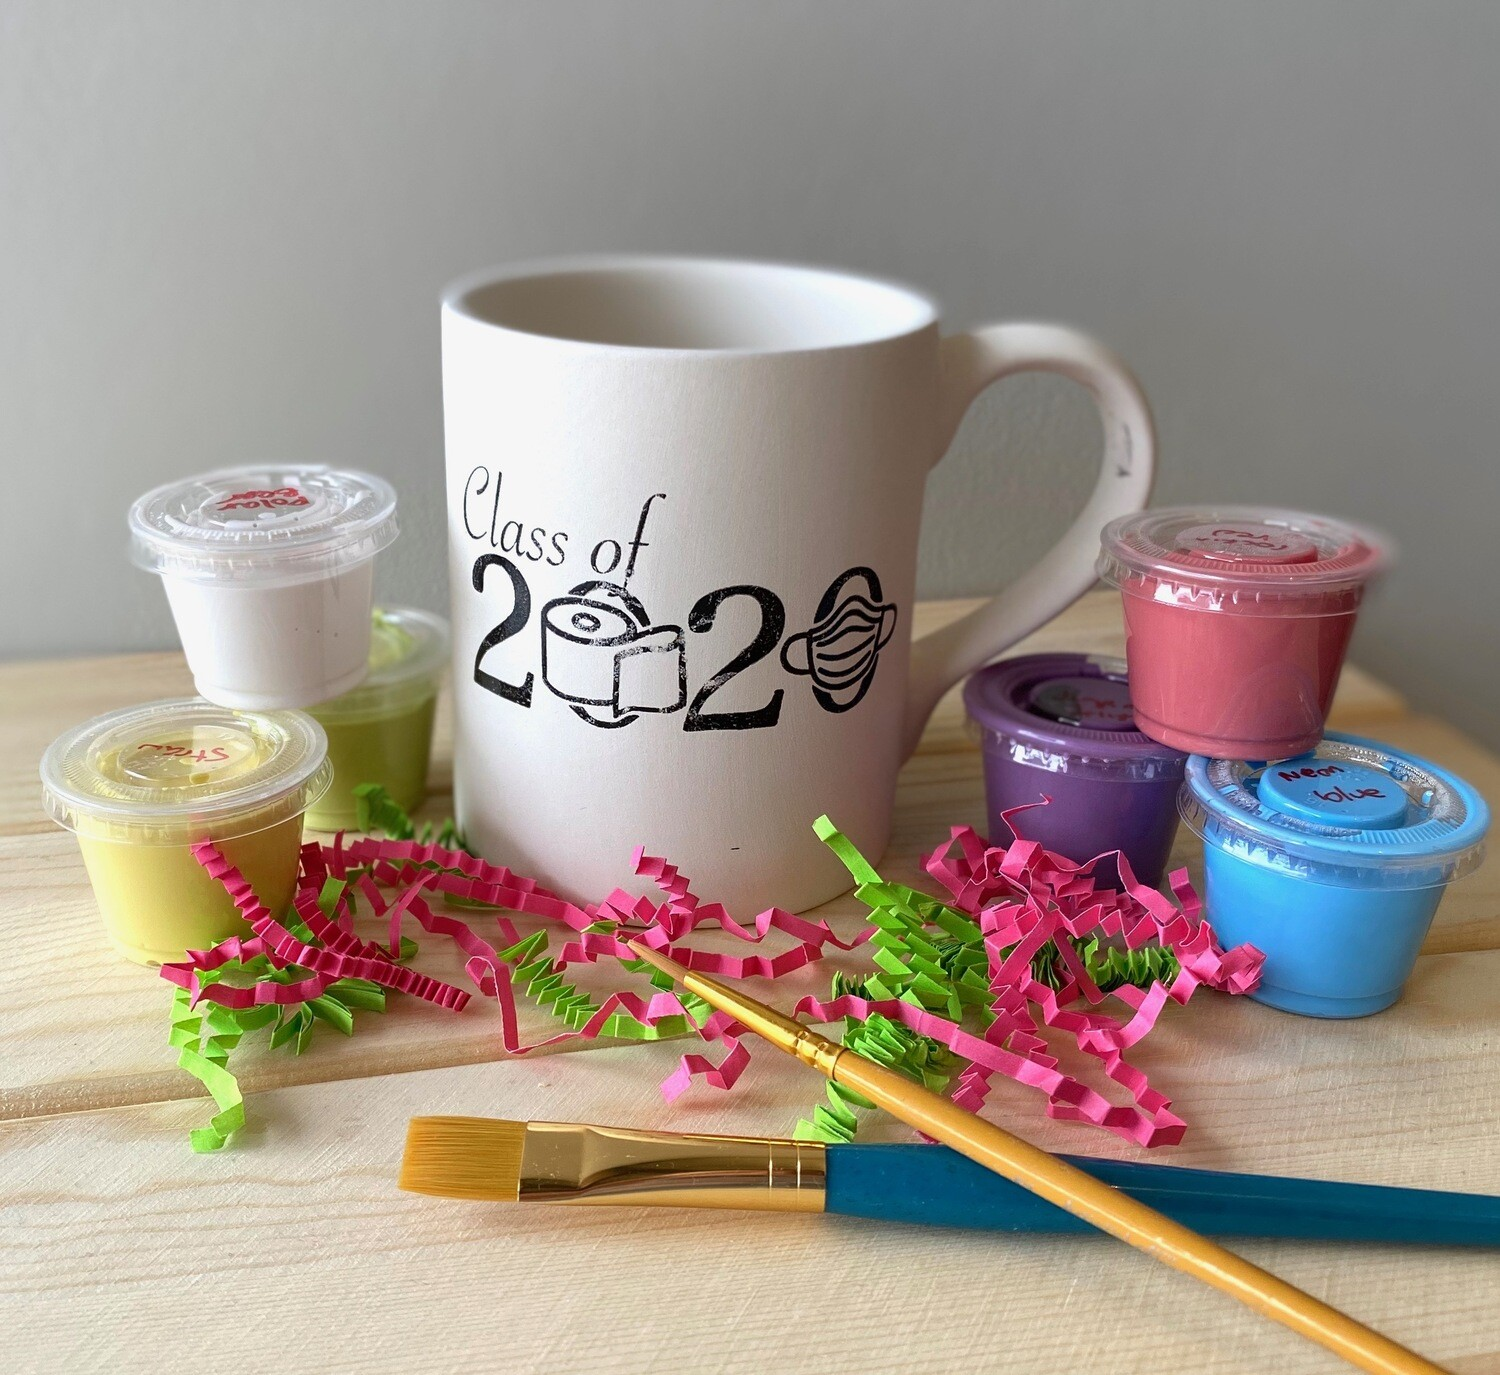 Take Home Coloring Book 12 oz Class of 2020 Mug with Glazes - Pick up at Pet Depot